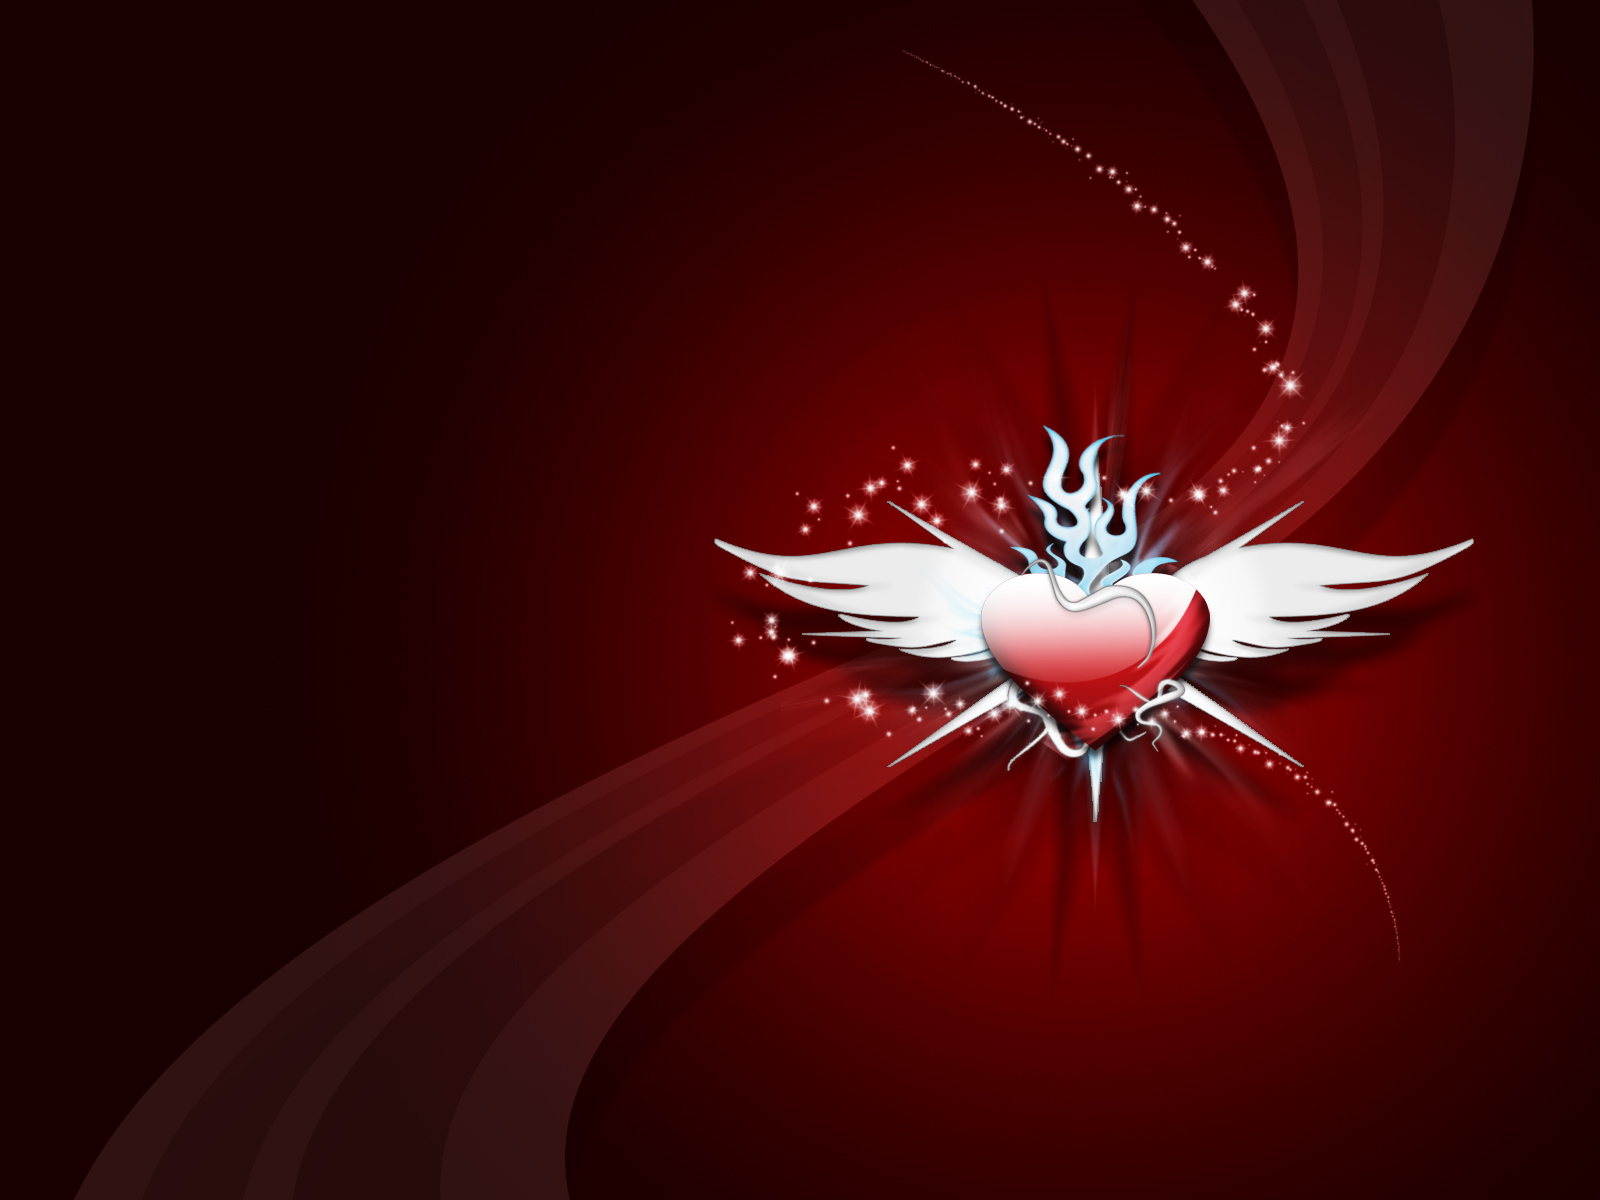 love 49 wallpapers - photo #33